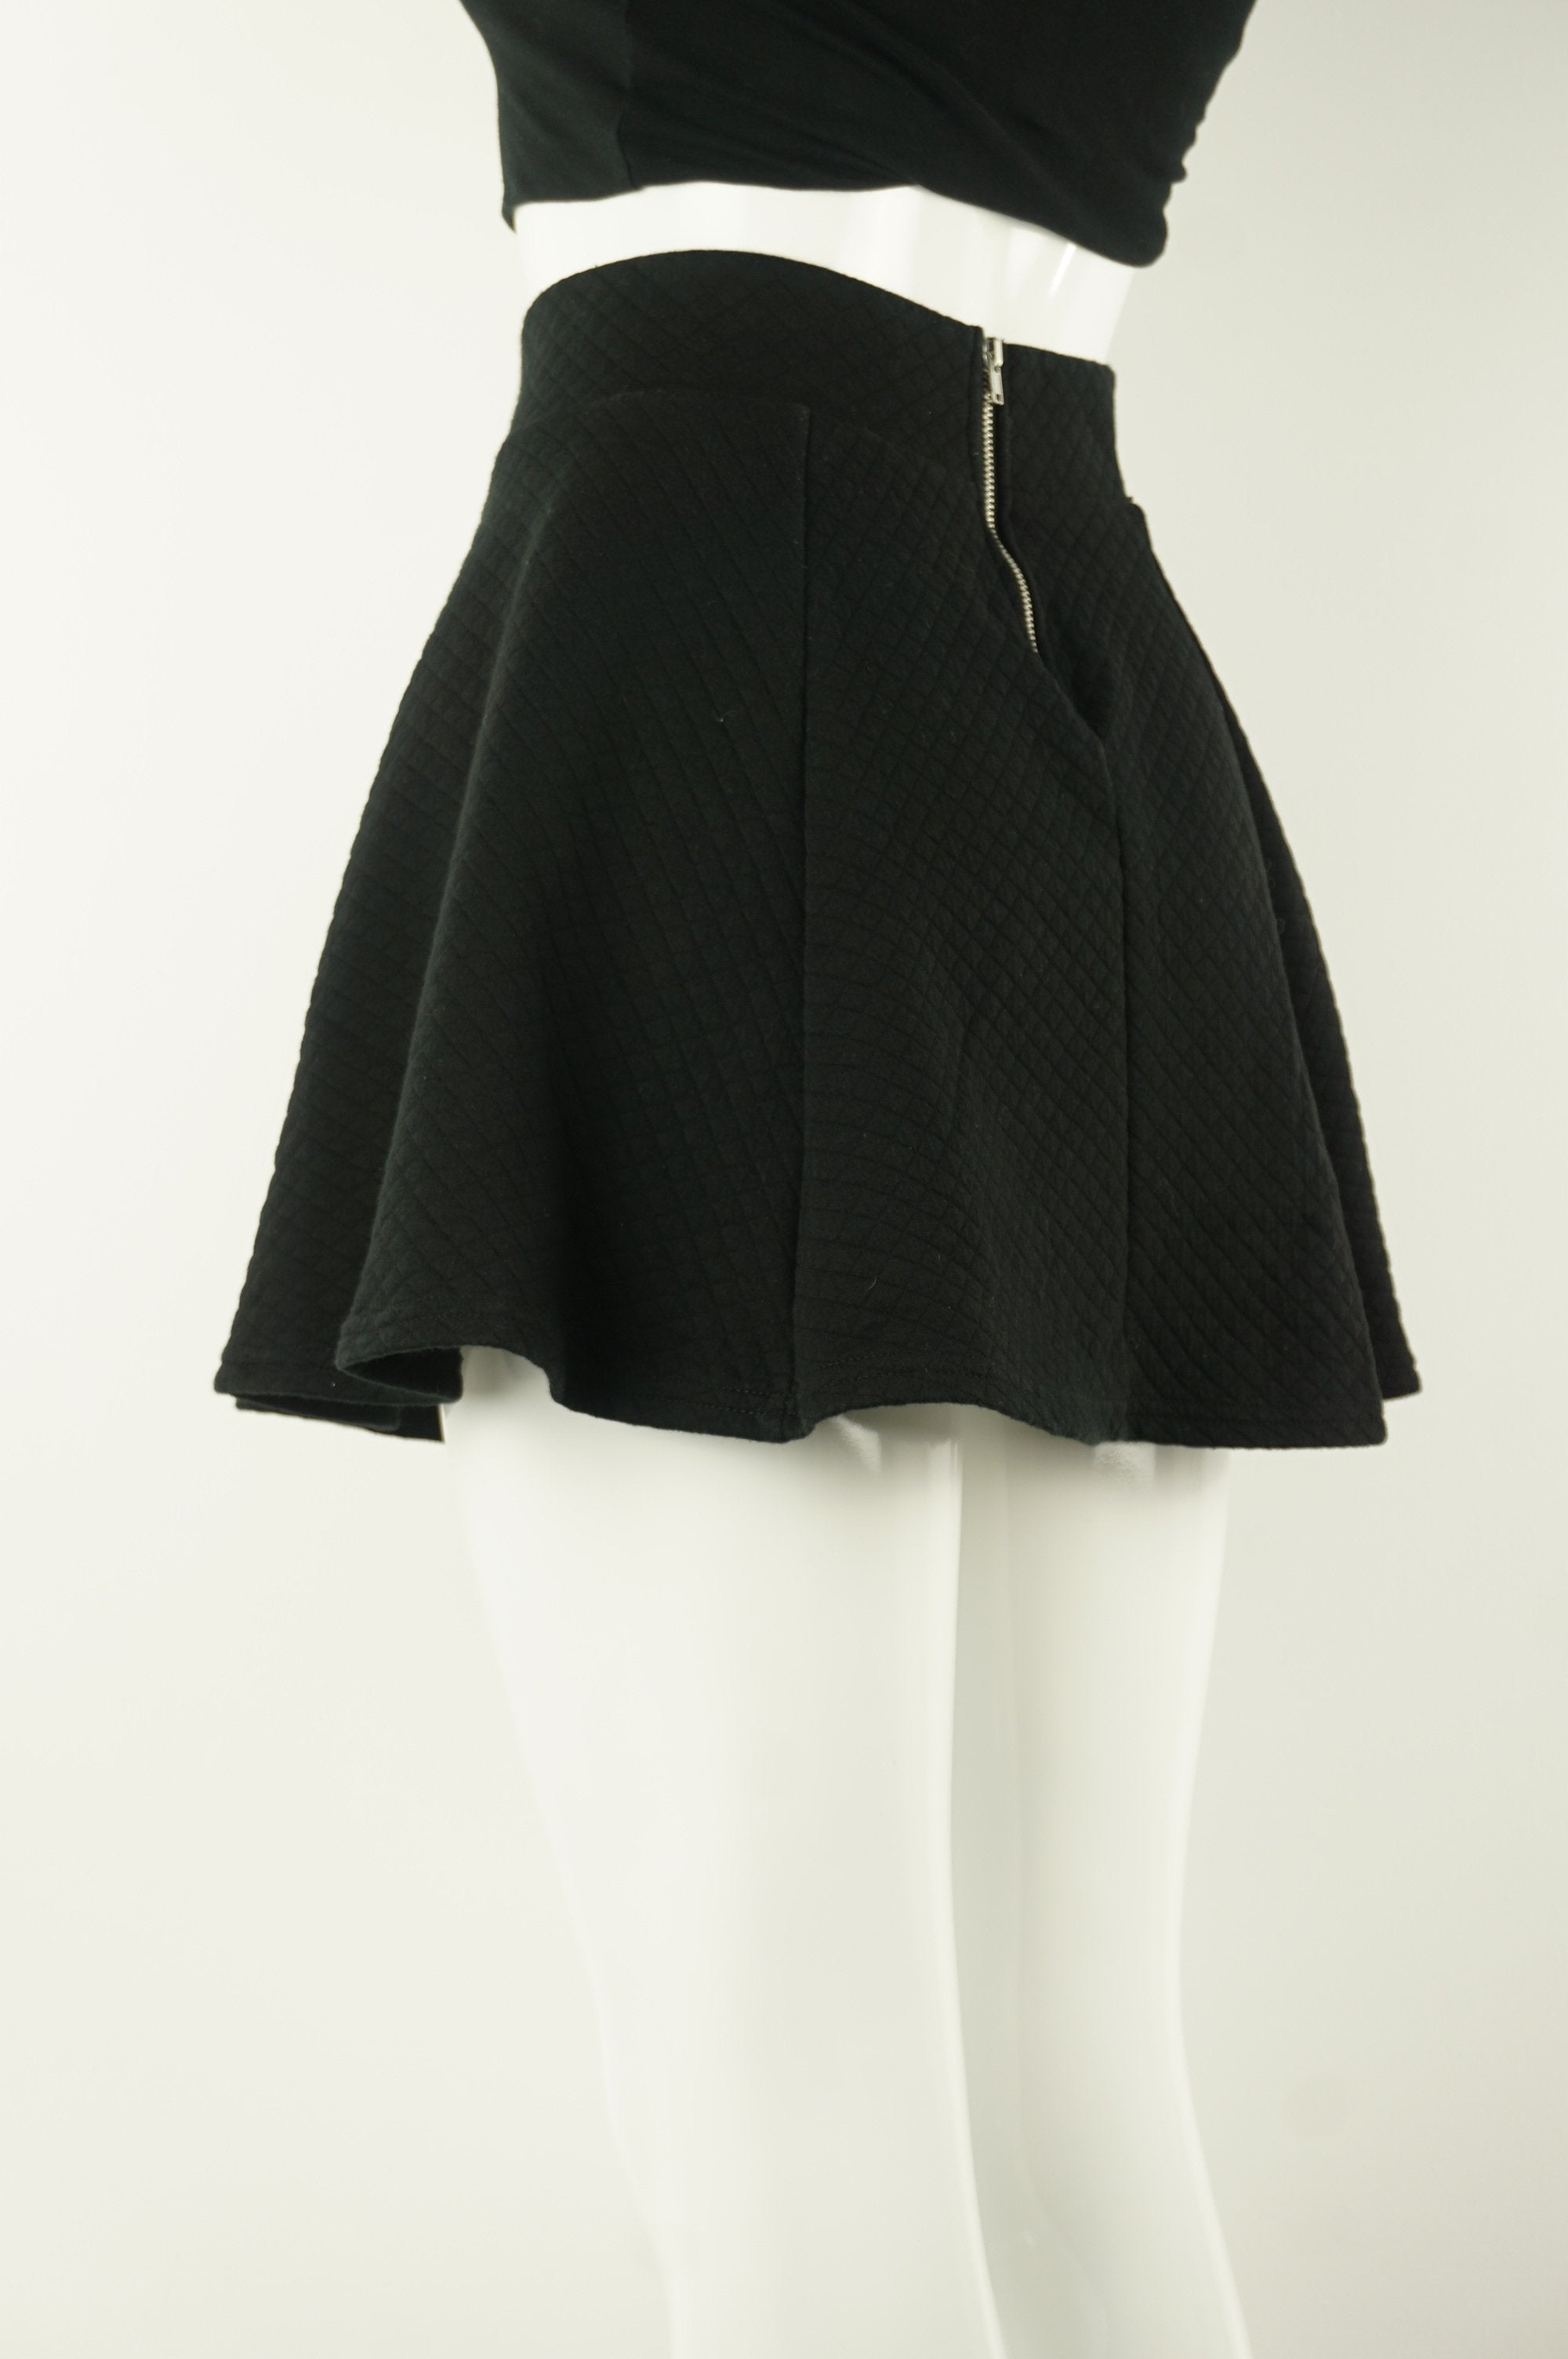 H&M Quilted Skirt, Thicker quilted skirt with zipper in the back. , Black, Cotton and Elastane, women's Dresses & Skirts, women's Black Dresses & Skirts, H&M women's Dresses & Skirts, women's quilted mini skirt, women's balck short skirt